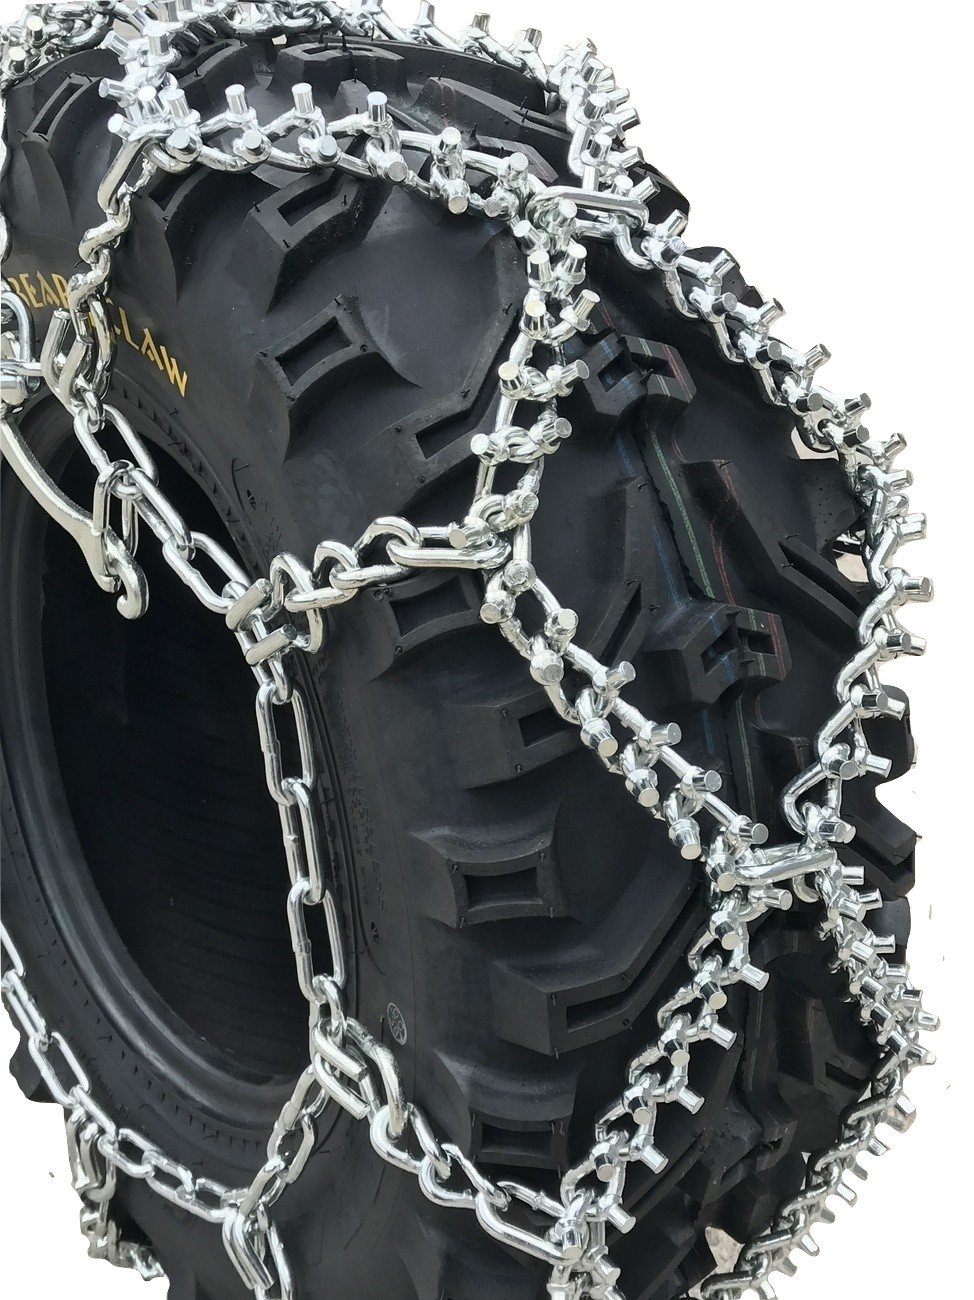 TireChain.com 26x12-12, 26 12 12 ATV UTV Stud Tire Chains, Spider Tightners by TireChain.com